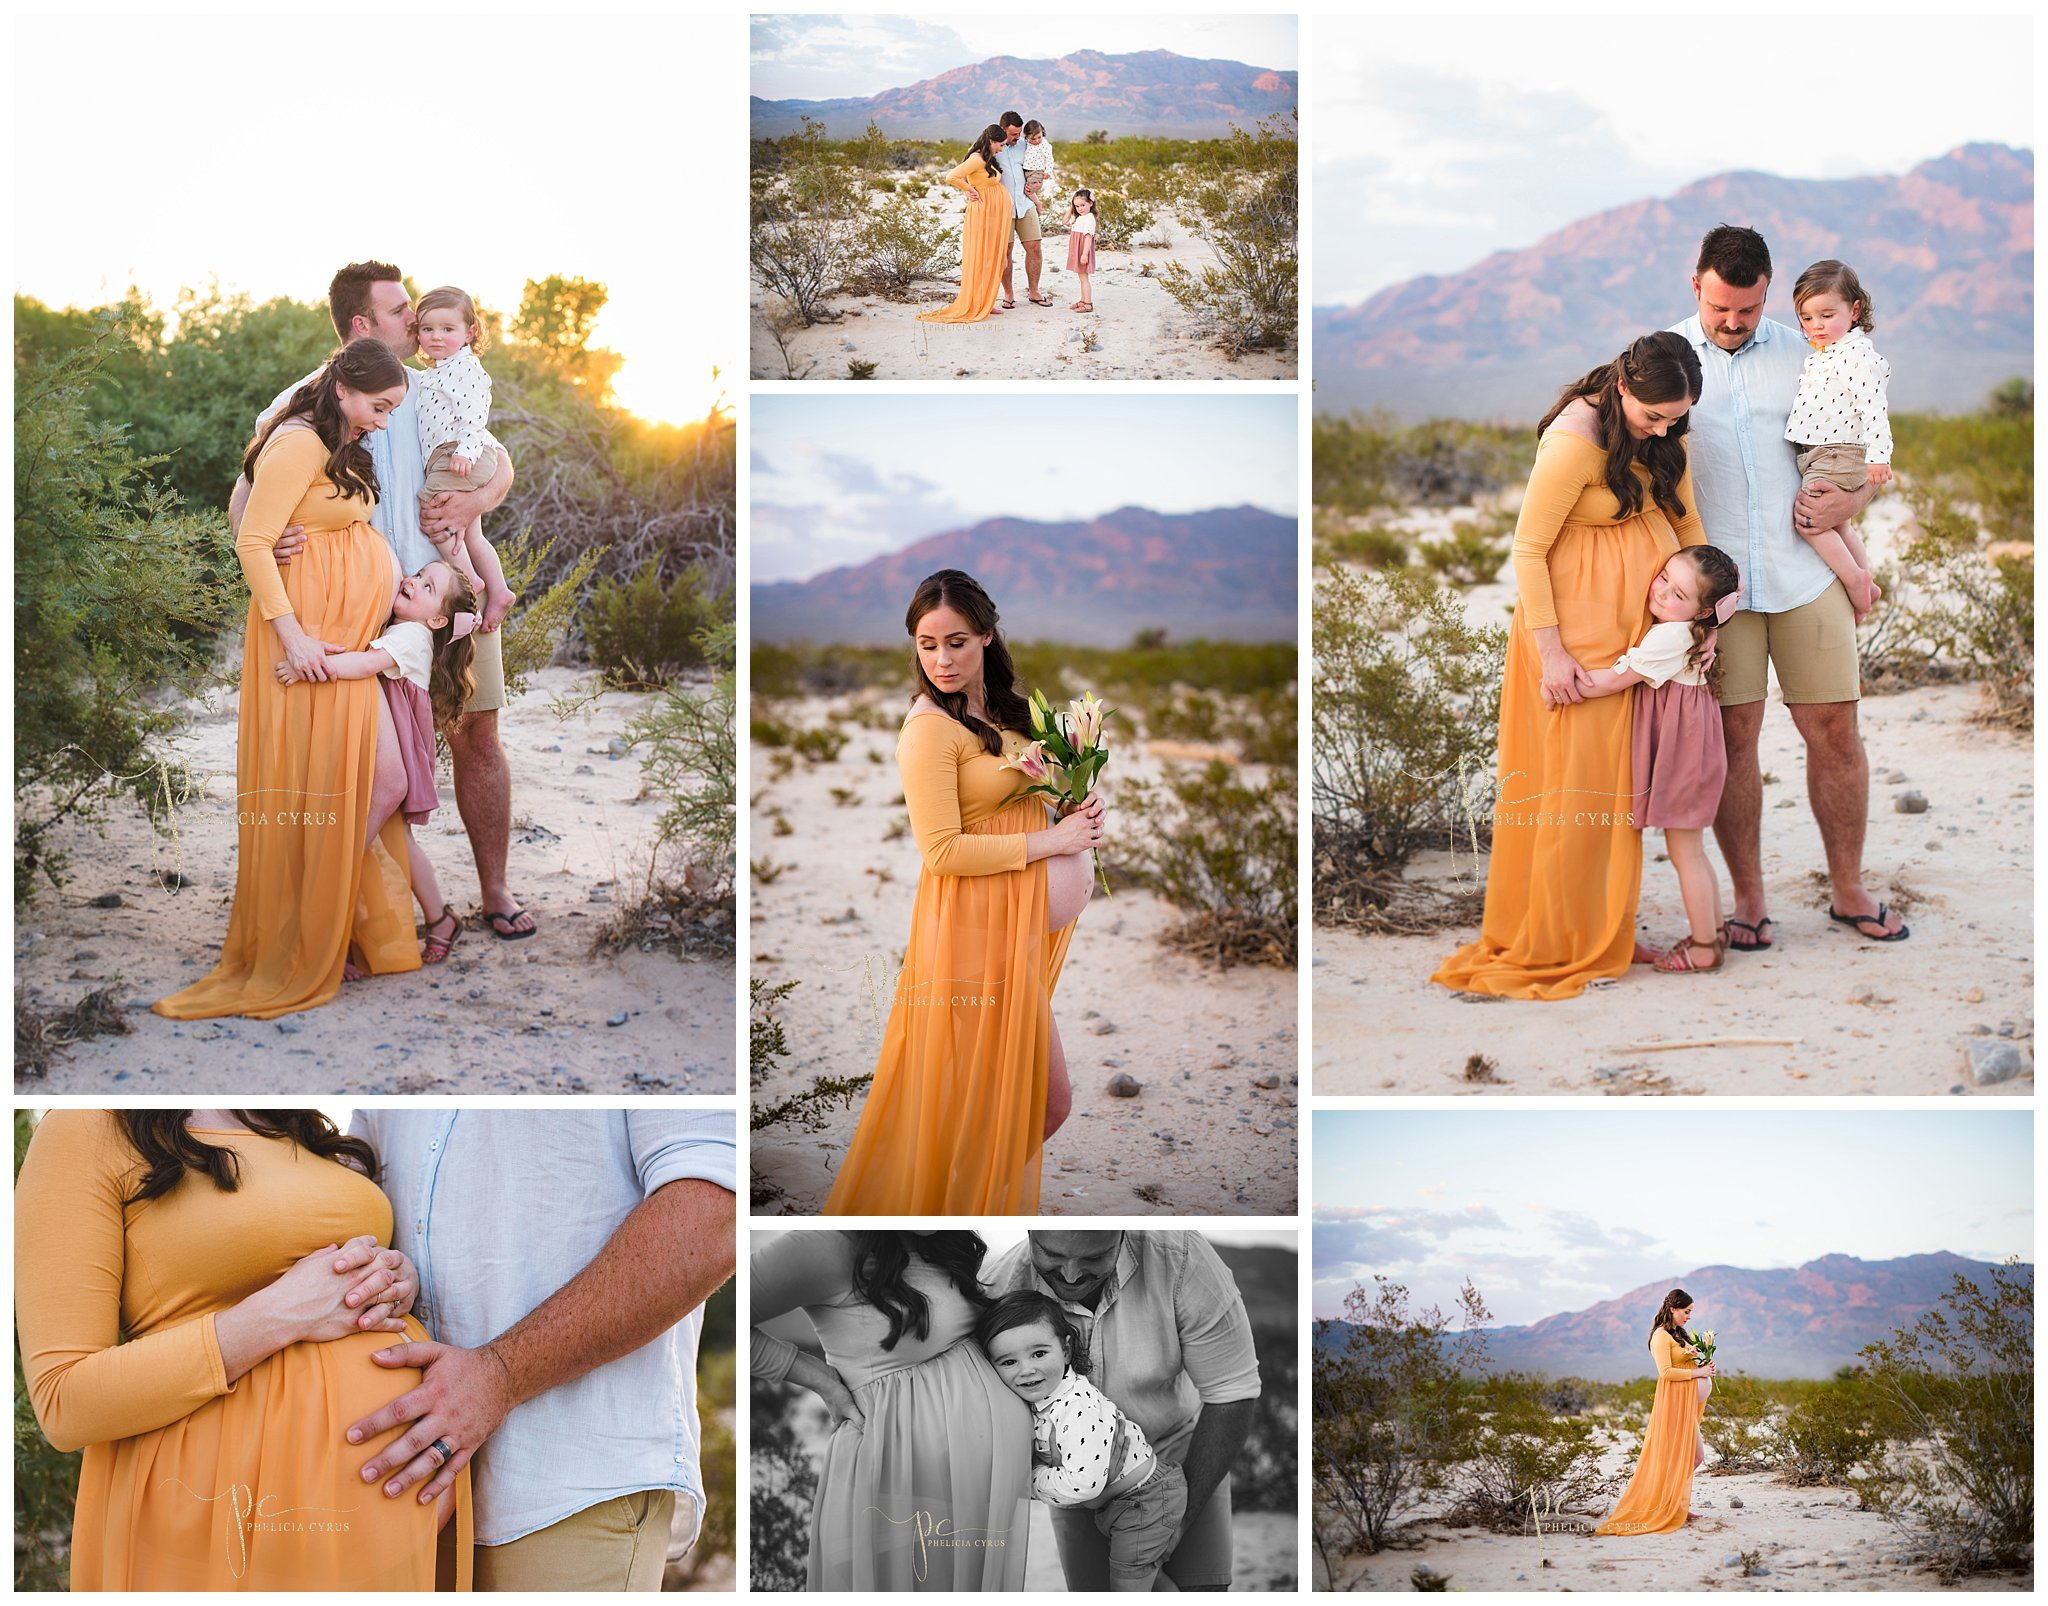 las-vegas-maternity-photography-of-mom-and-daughter-in-desert